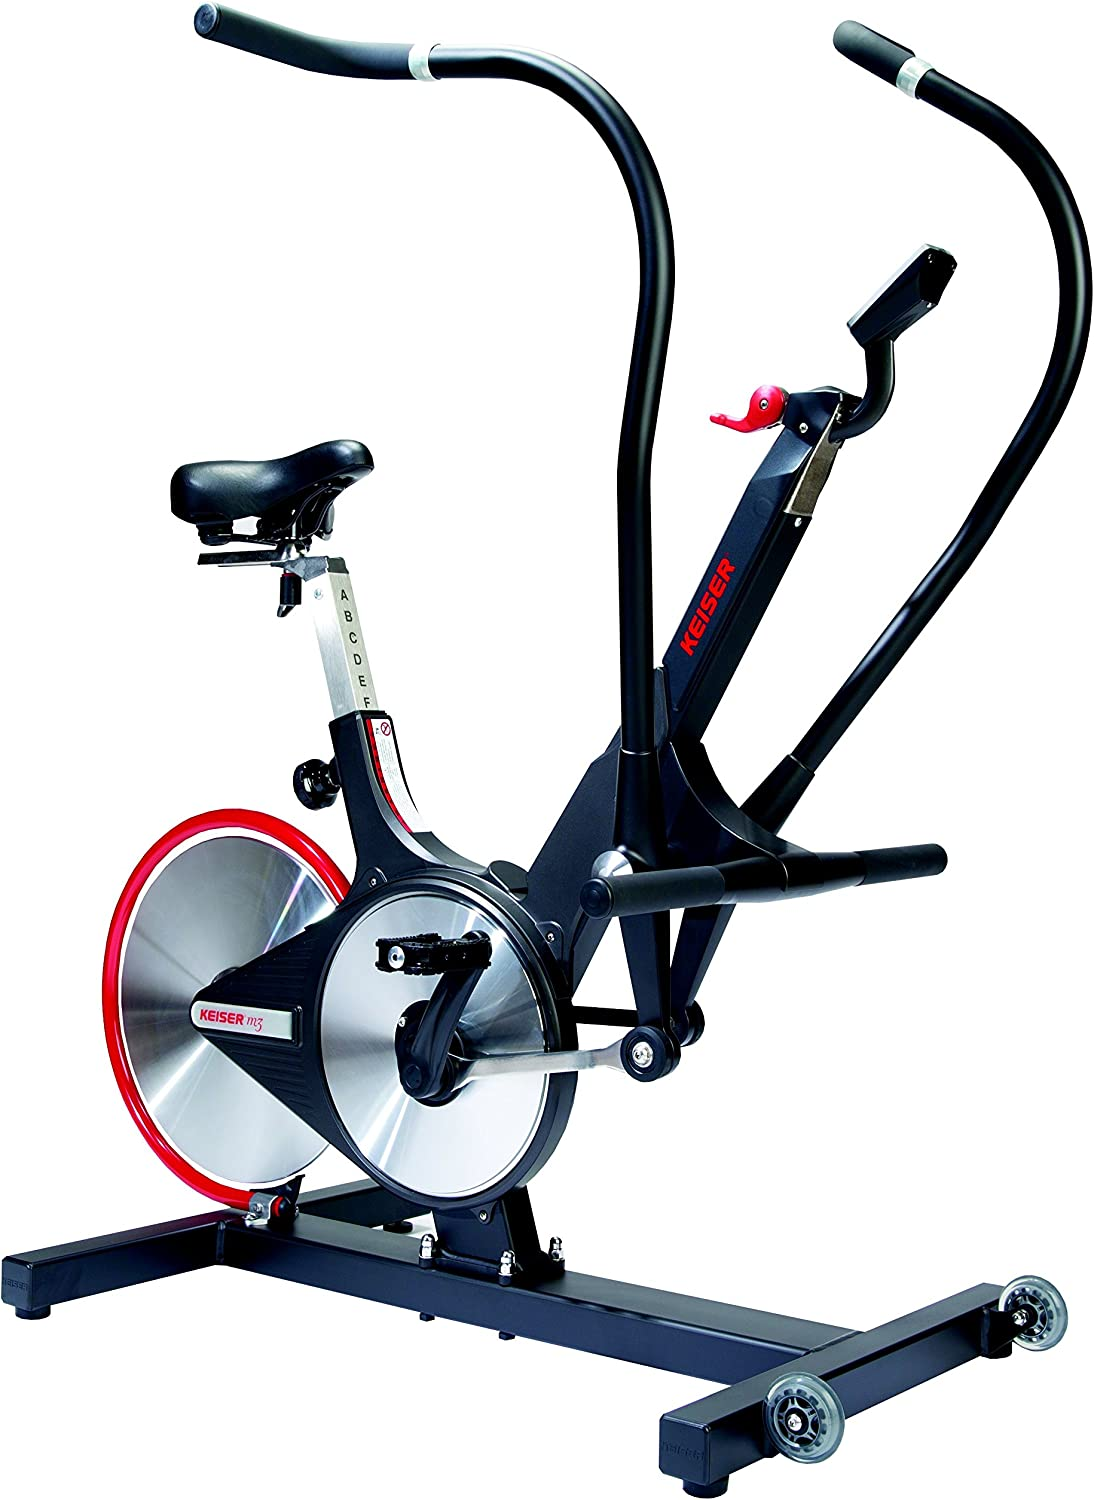 Keiser m3i Total Body Trainer: Amazon.es: Deportes y aire libre